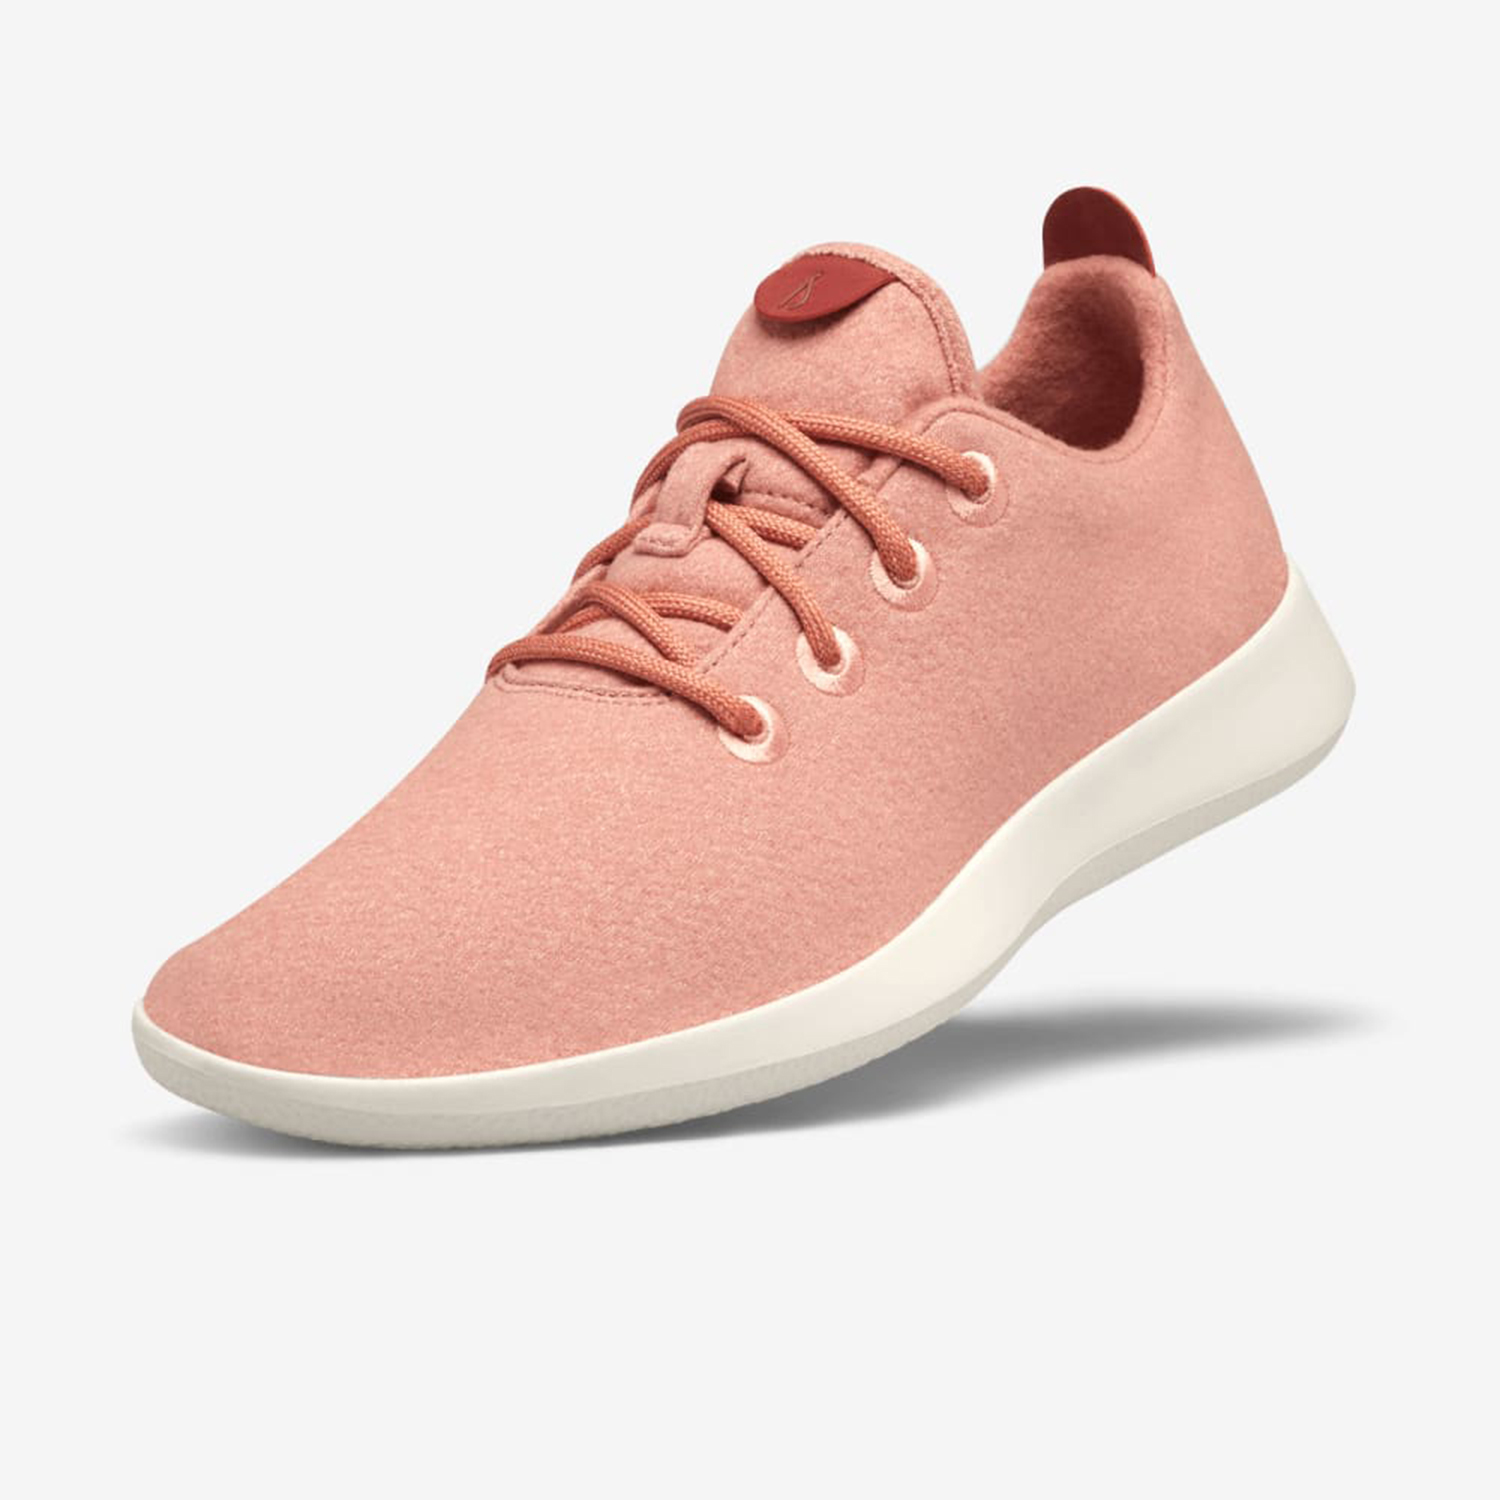 All Birds Women's Wool Runners Malibu Cream Sole